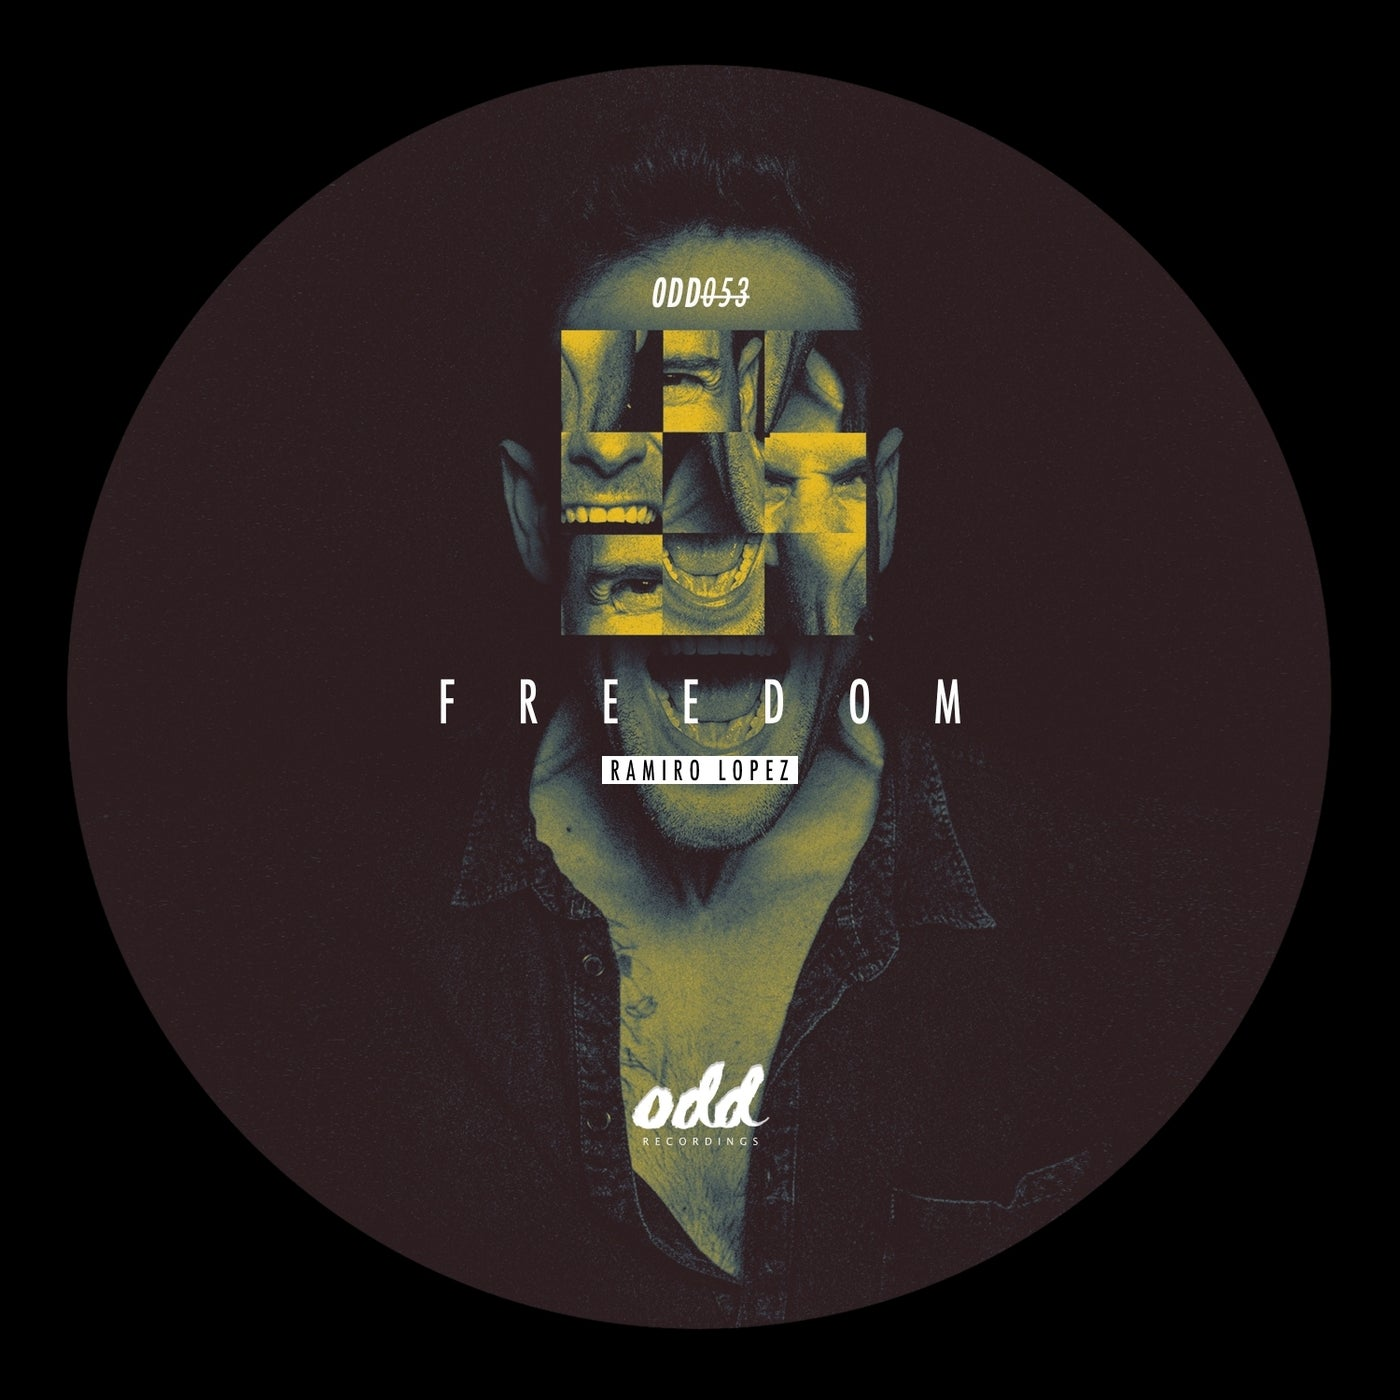 Download Freedom on Electrobuzz